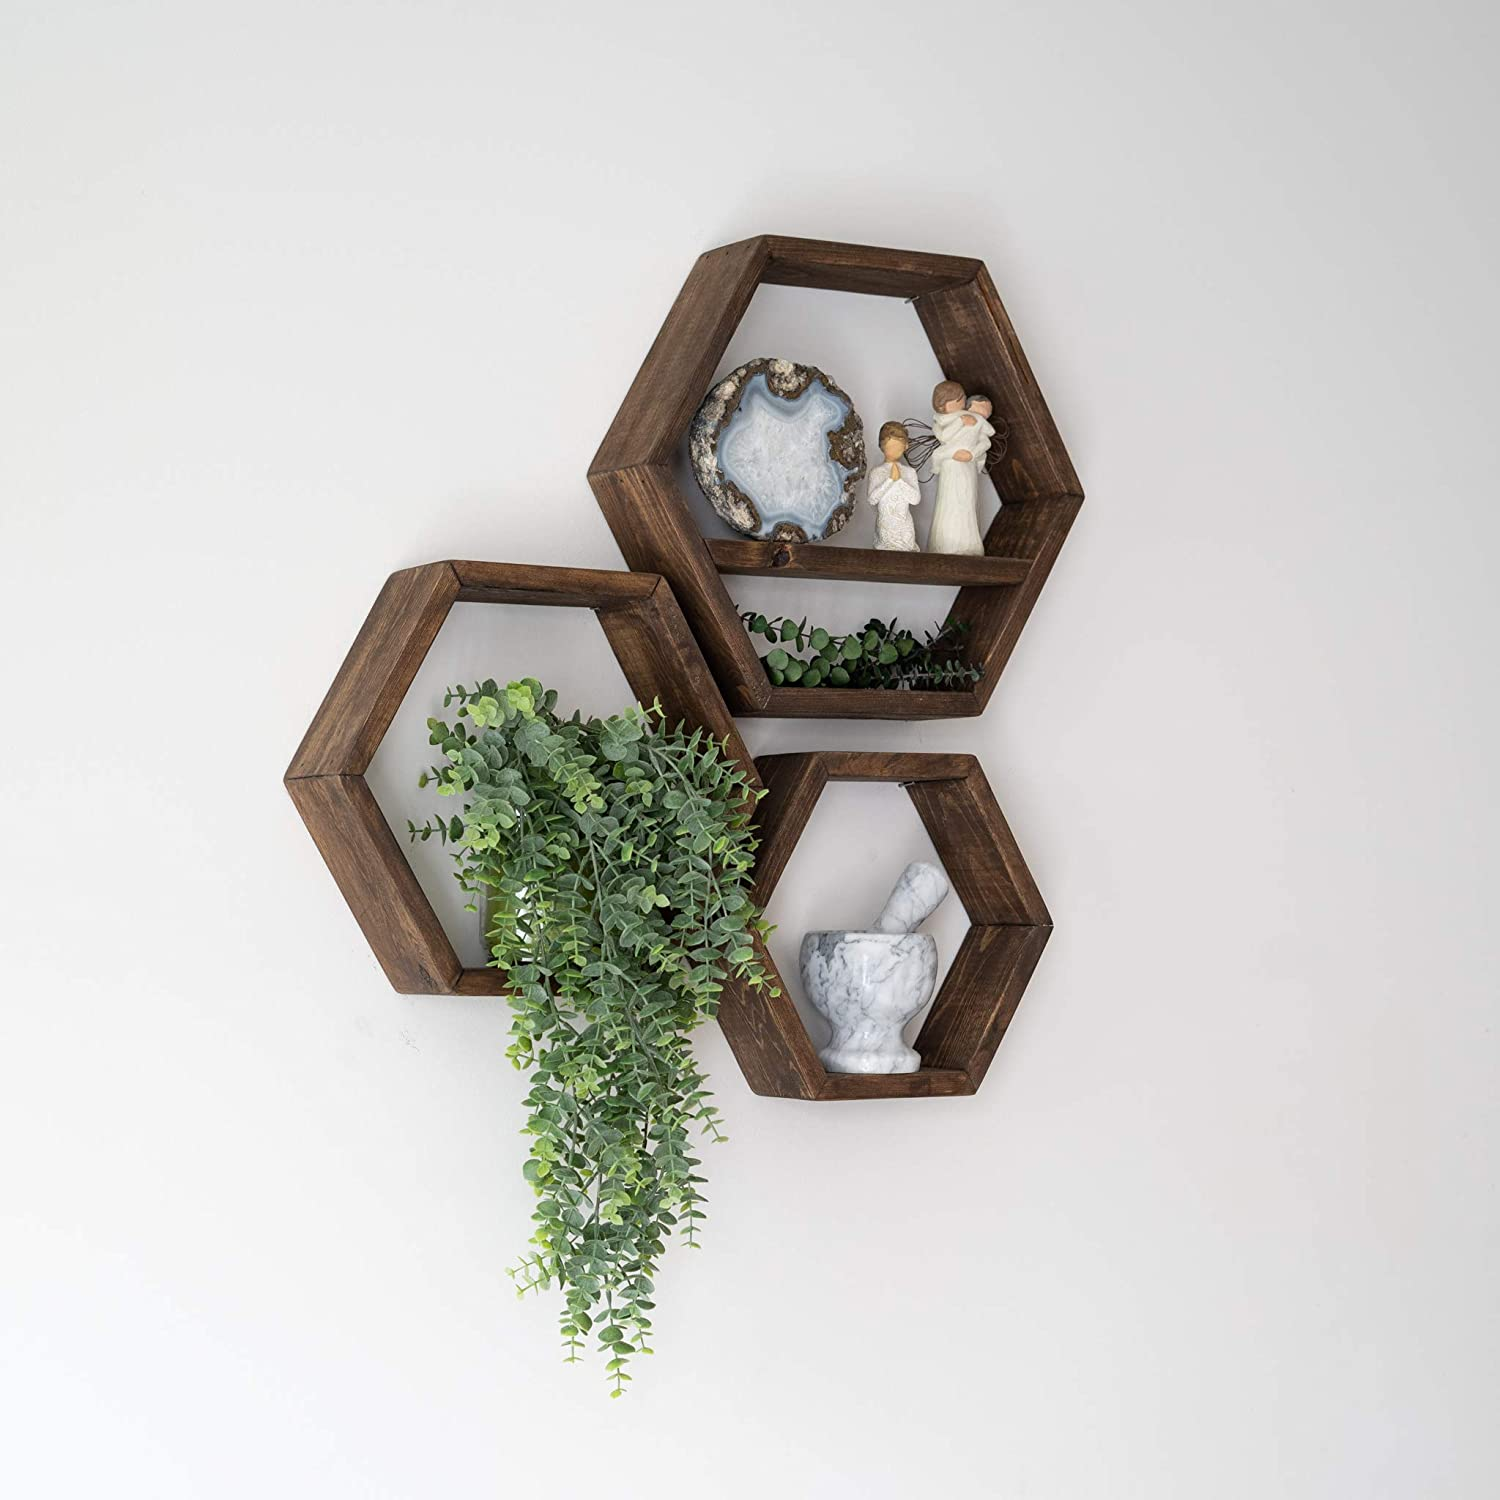 Farmhouse Chic Wall Hexagon Floating Shelves (W) – Set of 3 – Small, Medium and Large – Screws and Anchors Included - Rustic or Modern Shelves for Home, Office, kitchen, – Honeycomb Wall Decor -Walnut